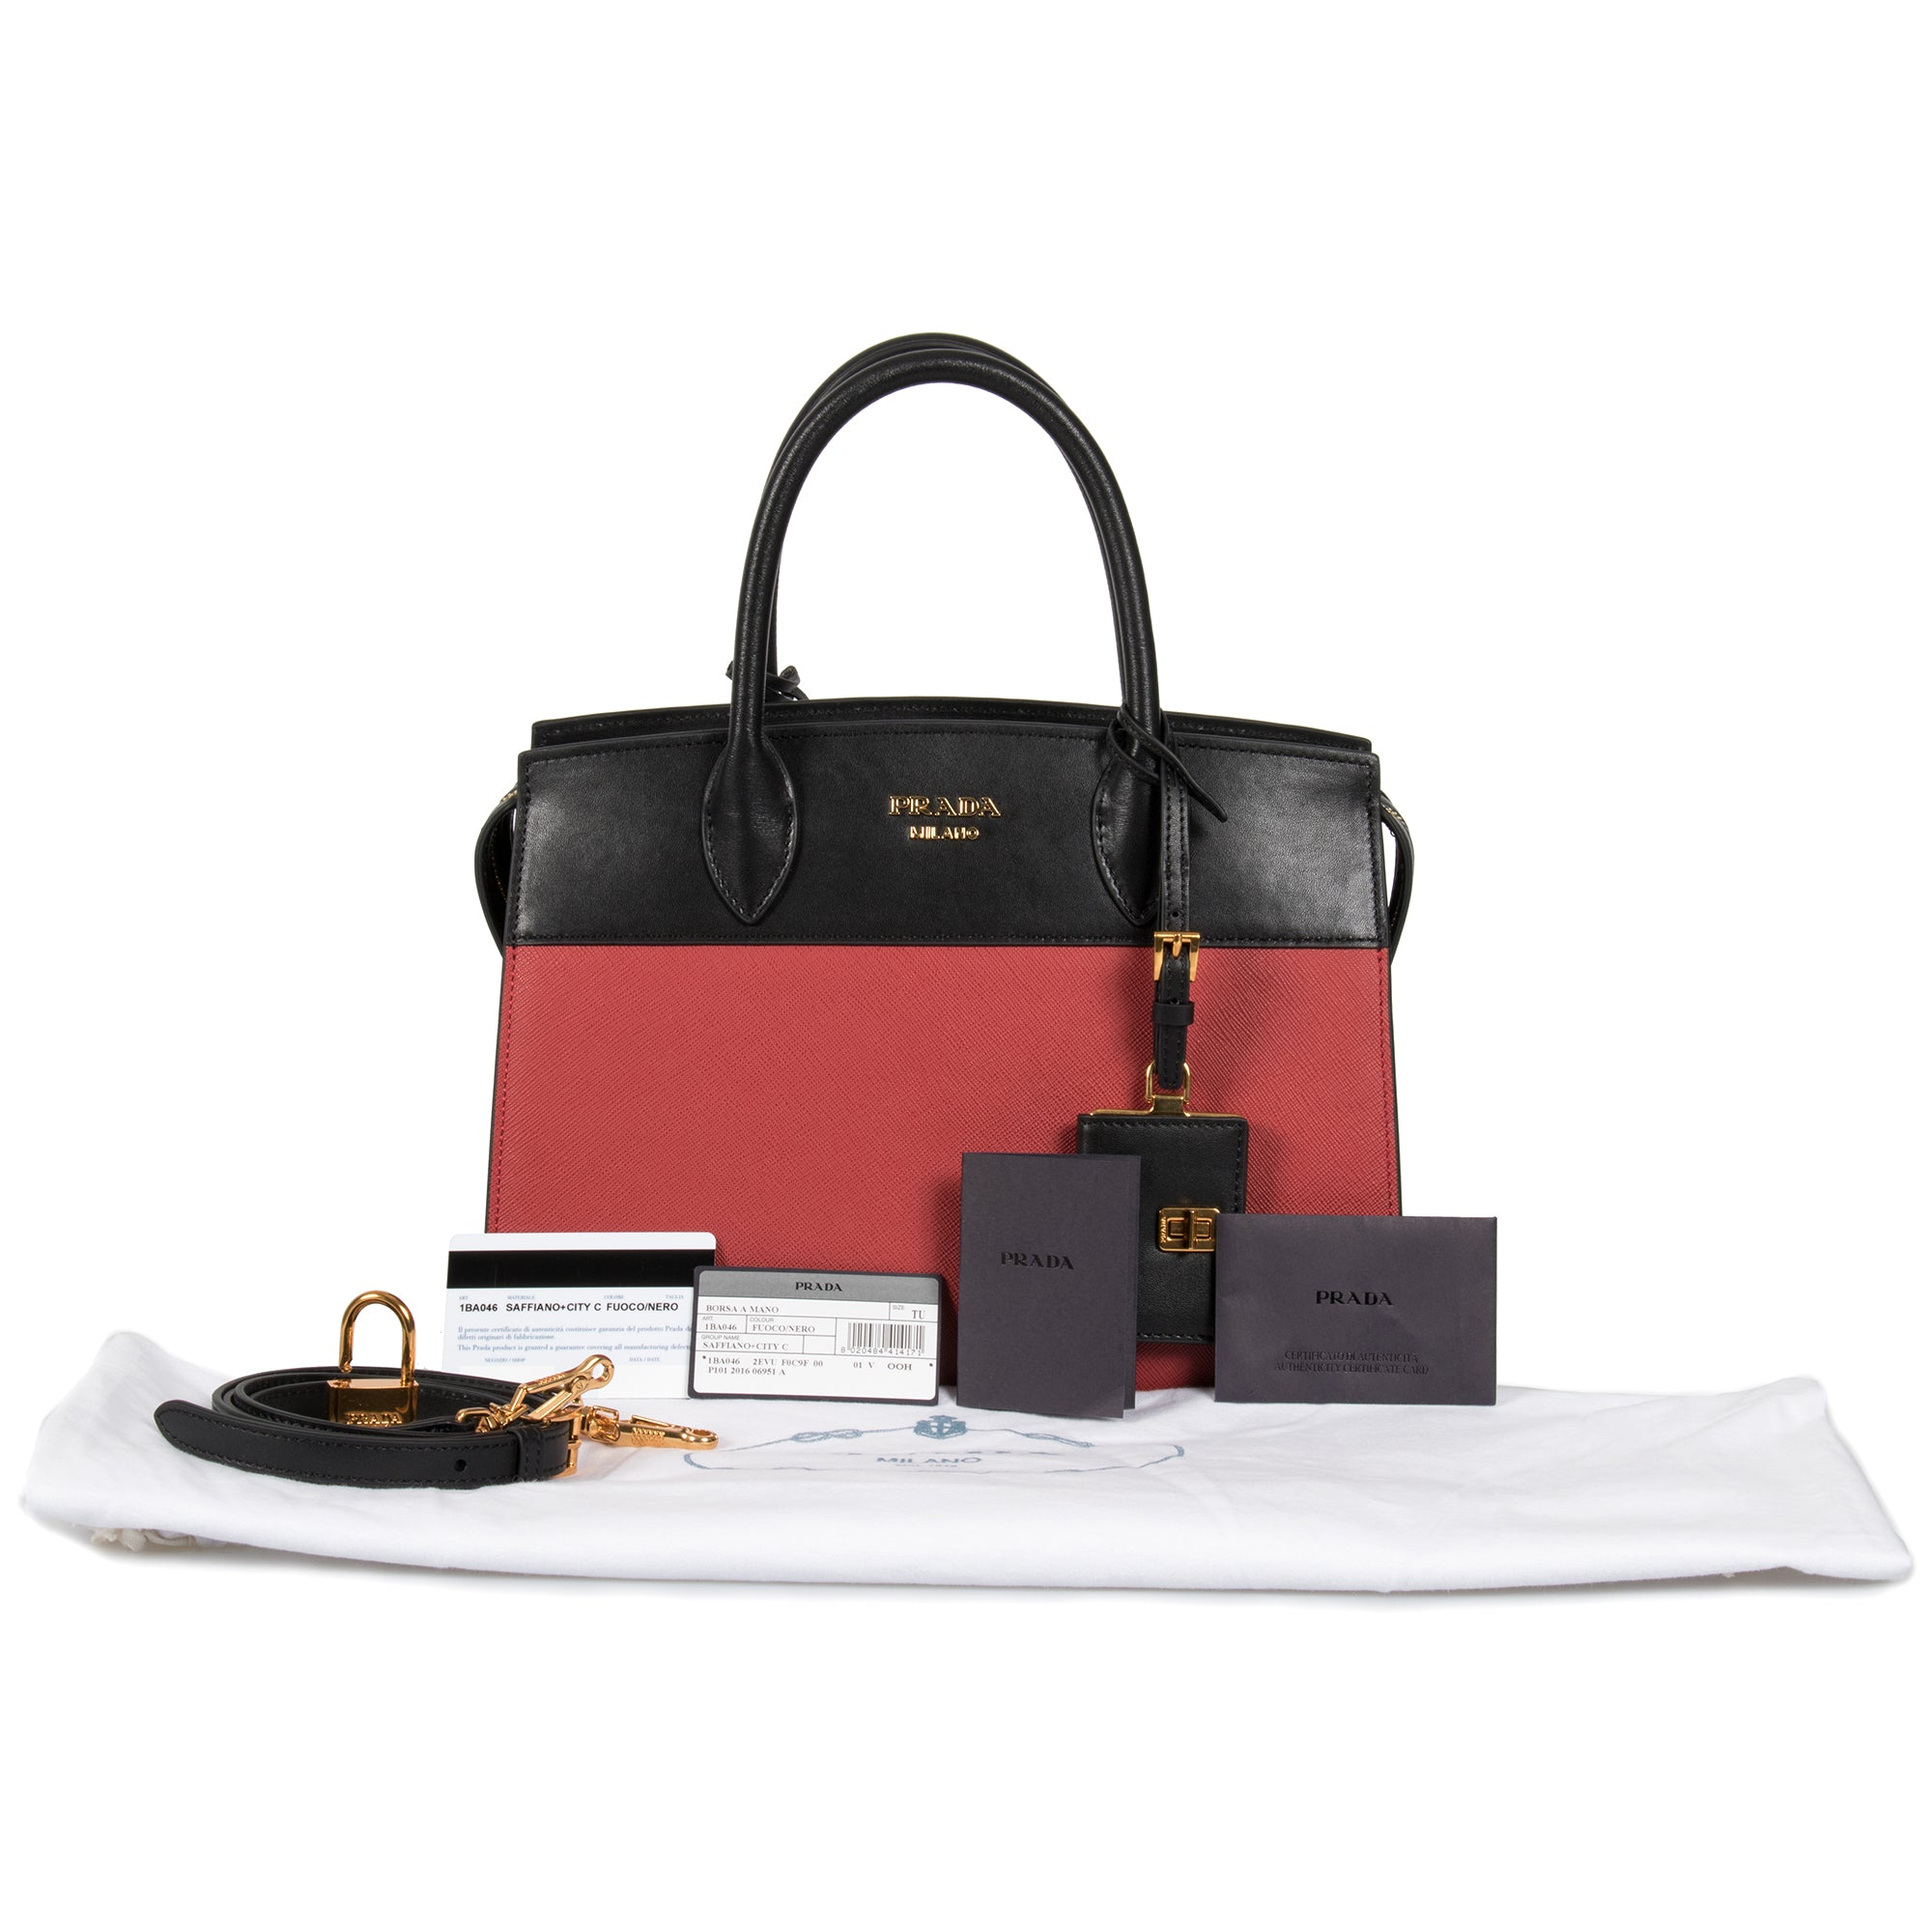 Prada Esplanade Leather Tote In Red and Black